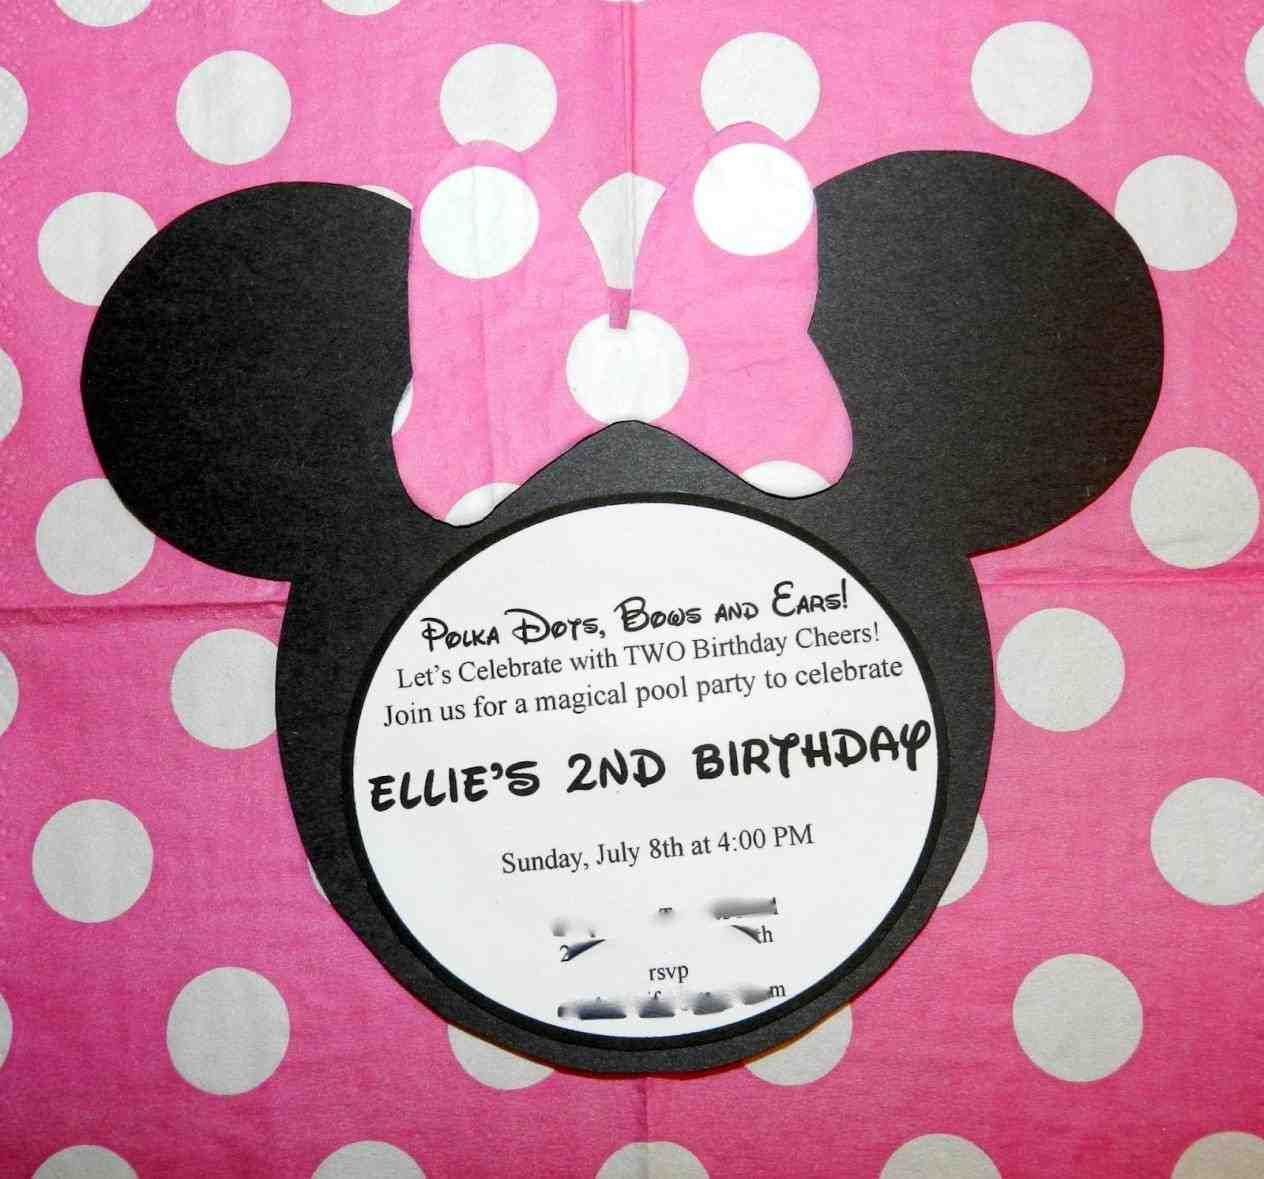 At second street minnie invitations minnie mouse birthday party at second street minnie invitations minnie mouse birthday party birthday party invitations in spanish for a bewitching birthday invitation design with solutioingenieria Choice Image